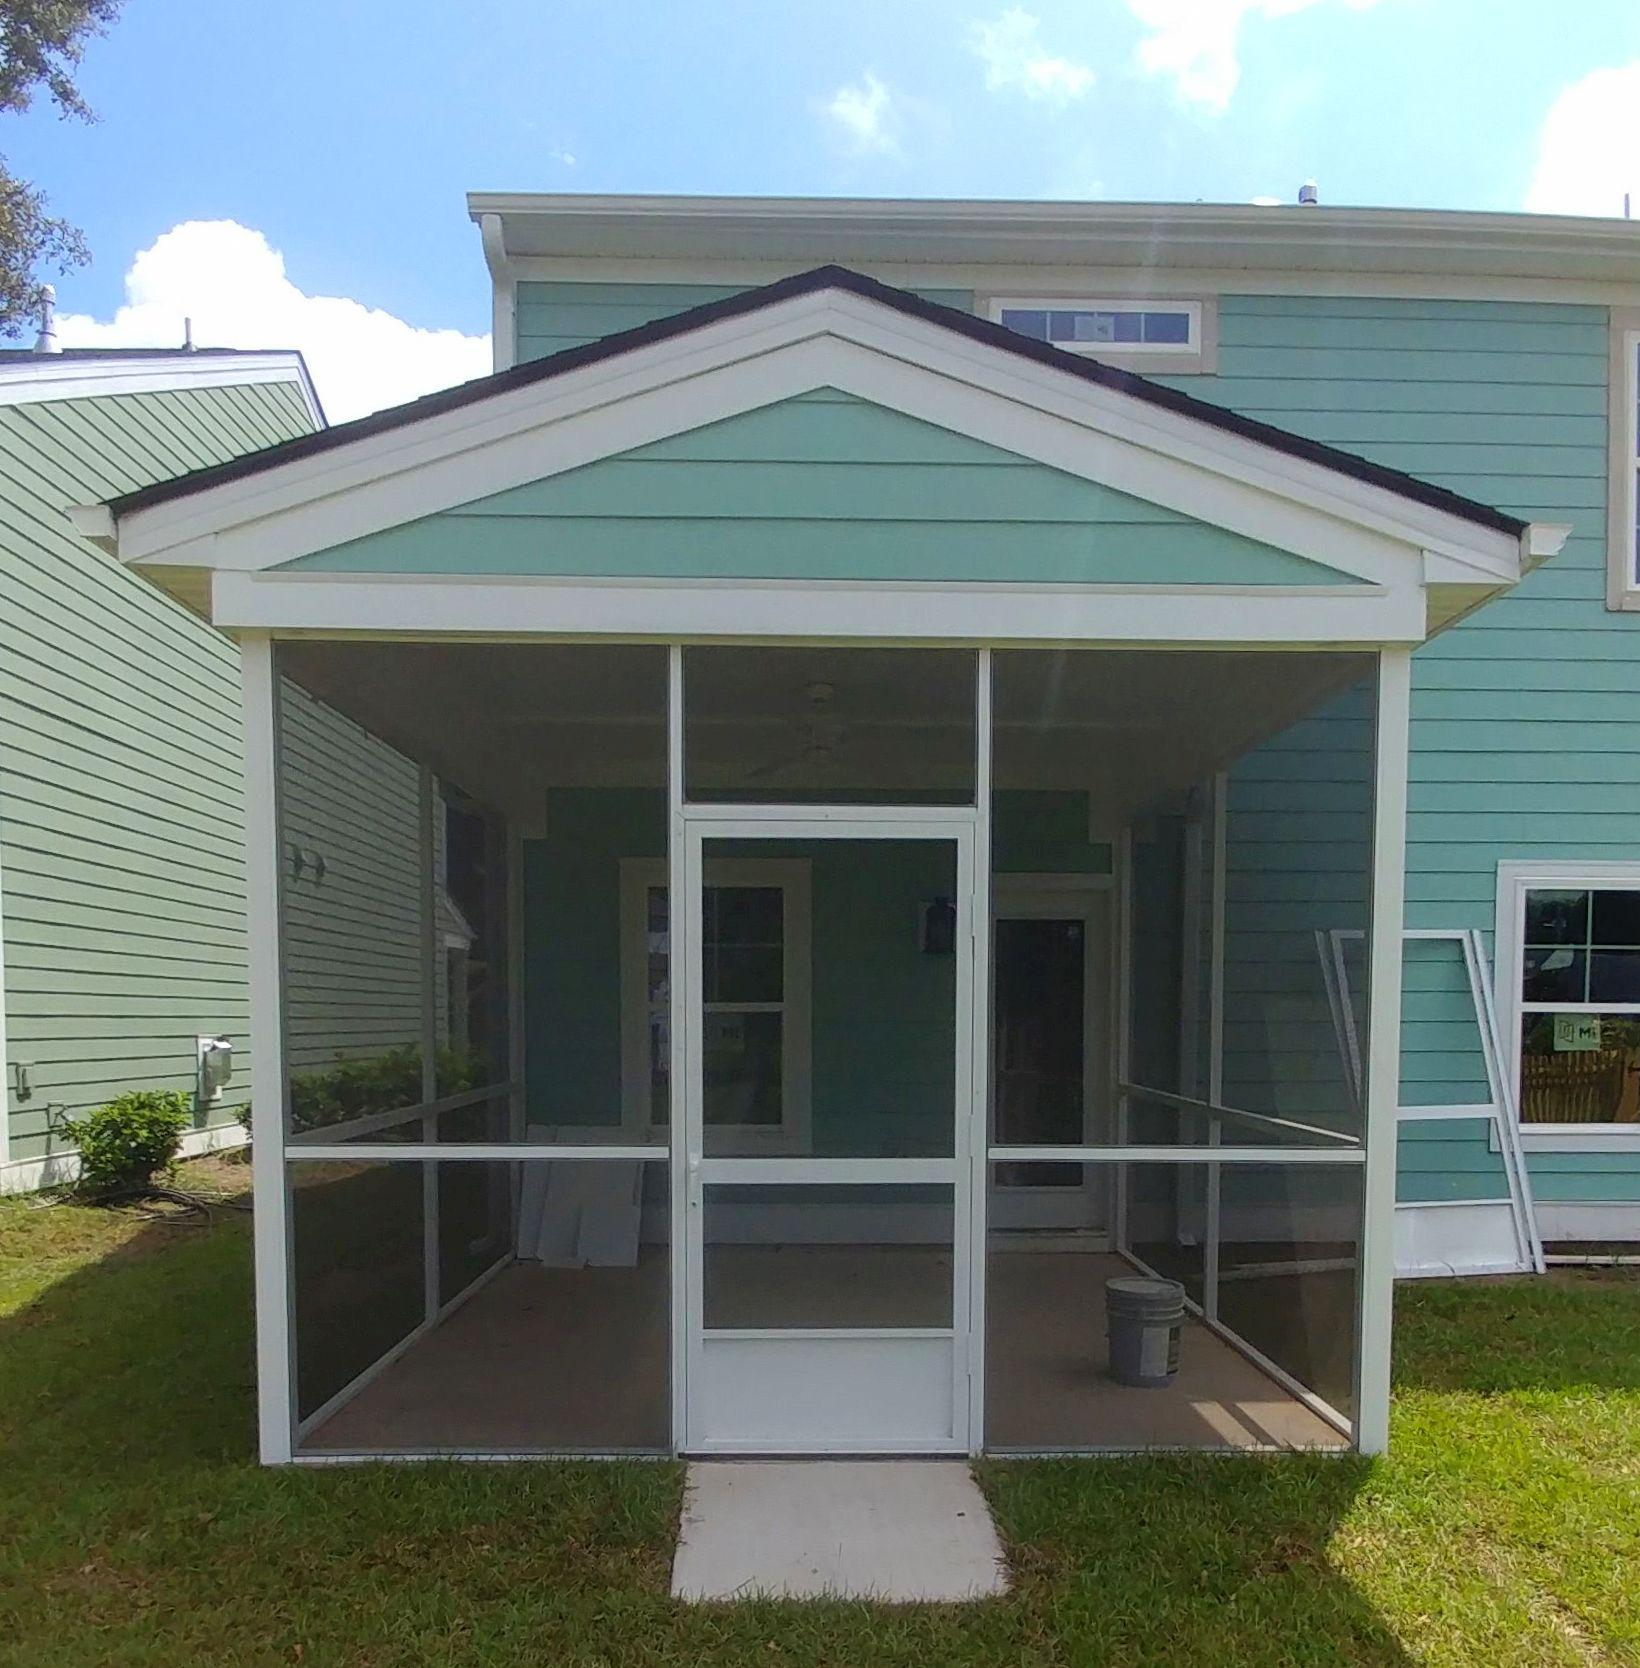 Photo of 1181 Leary St, North Charleston, SC 29406